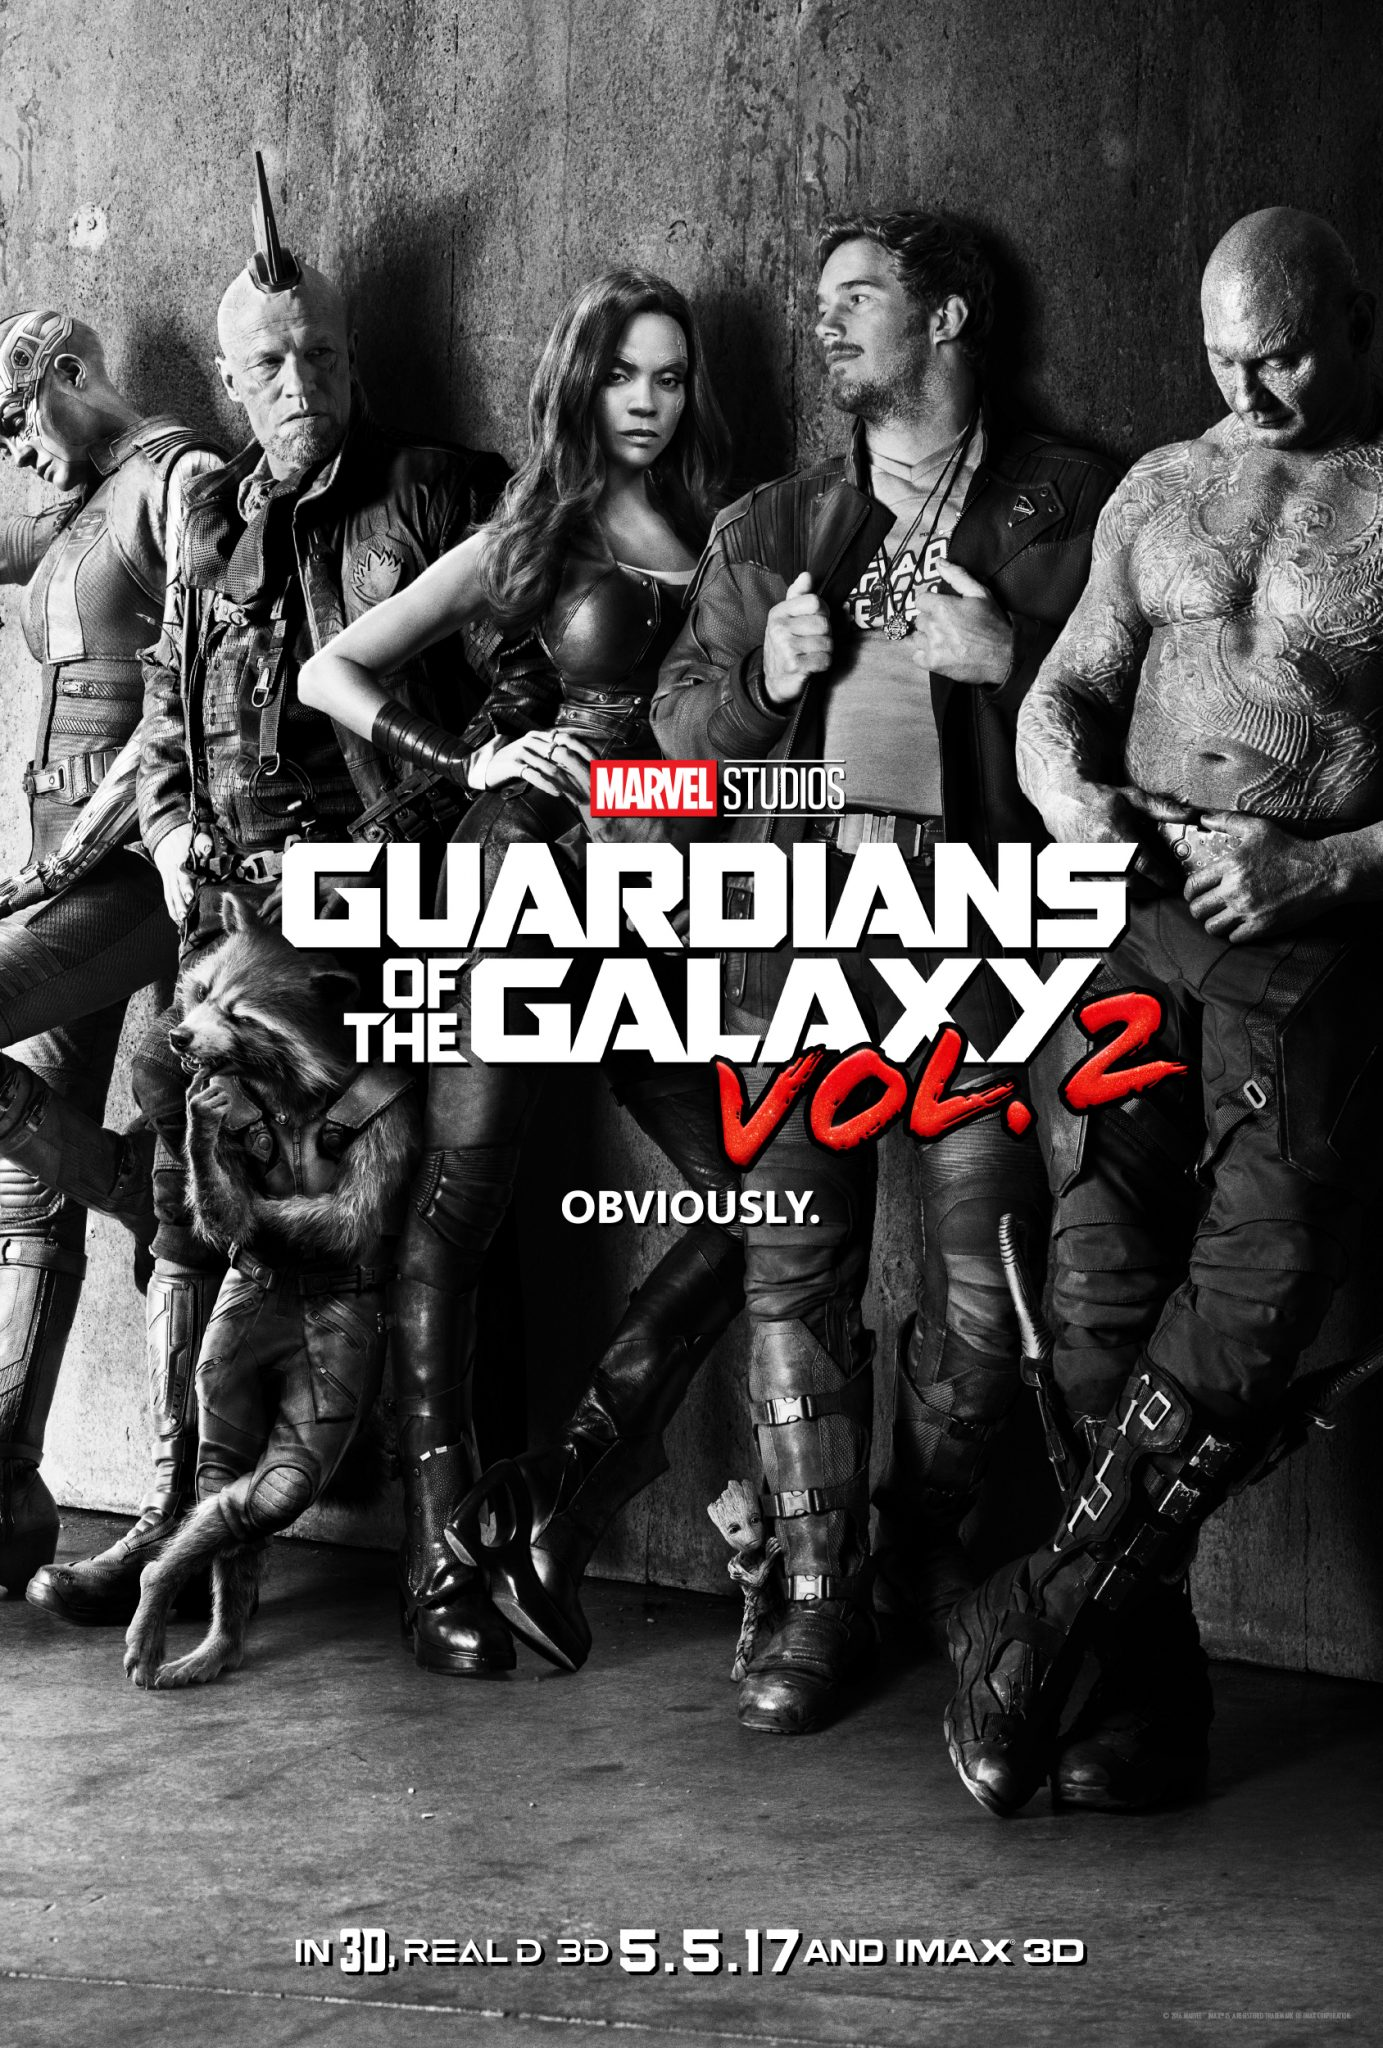 Guardians of the Galaxy Vol. 2 Poster Released!